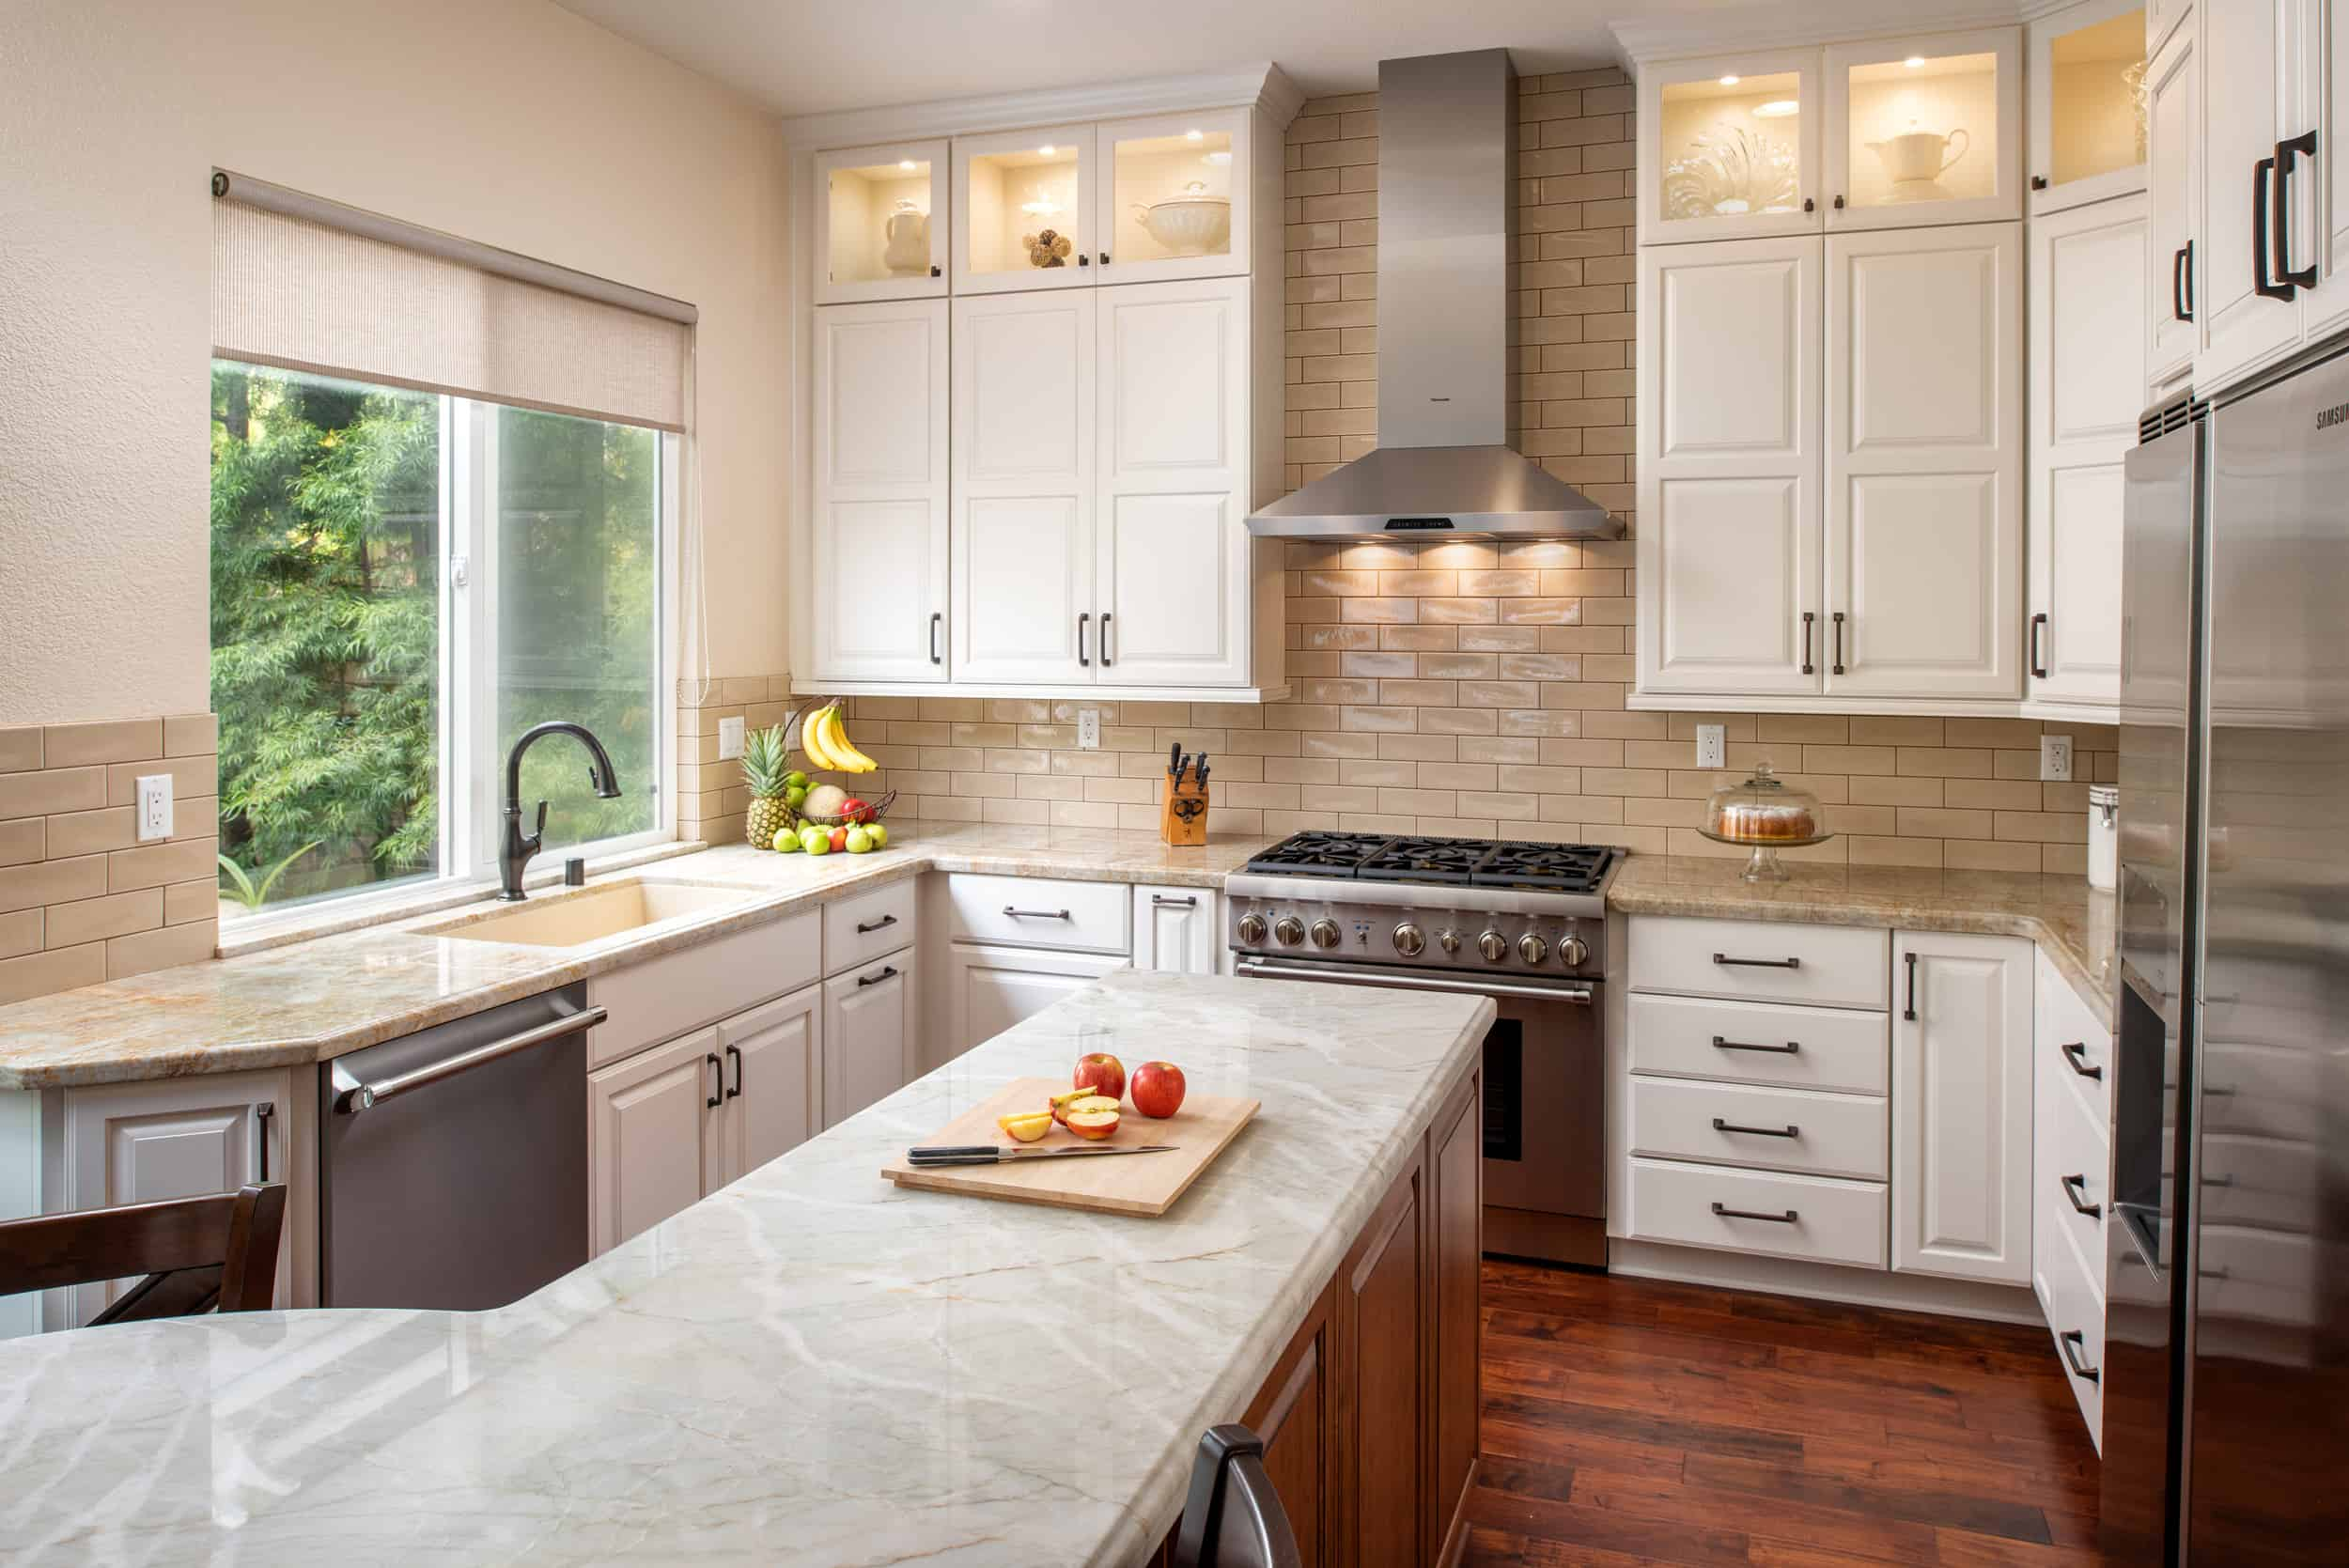 Remodel Design Kitchen Remodeling Design San Diego Remodel Works